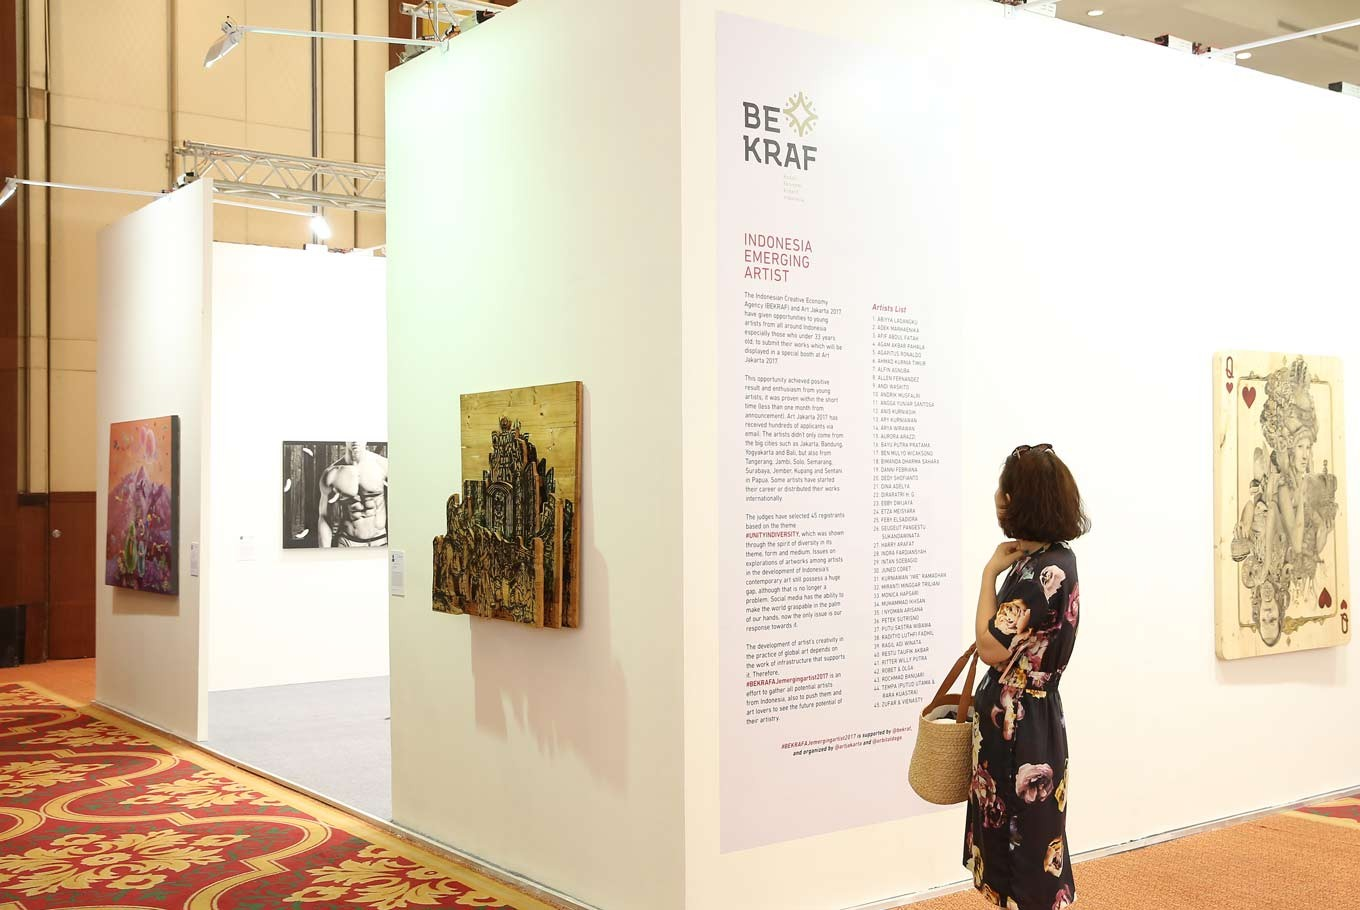 How BEKRAF and Art Jakarta 2017 supported emerging Indonesian artists